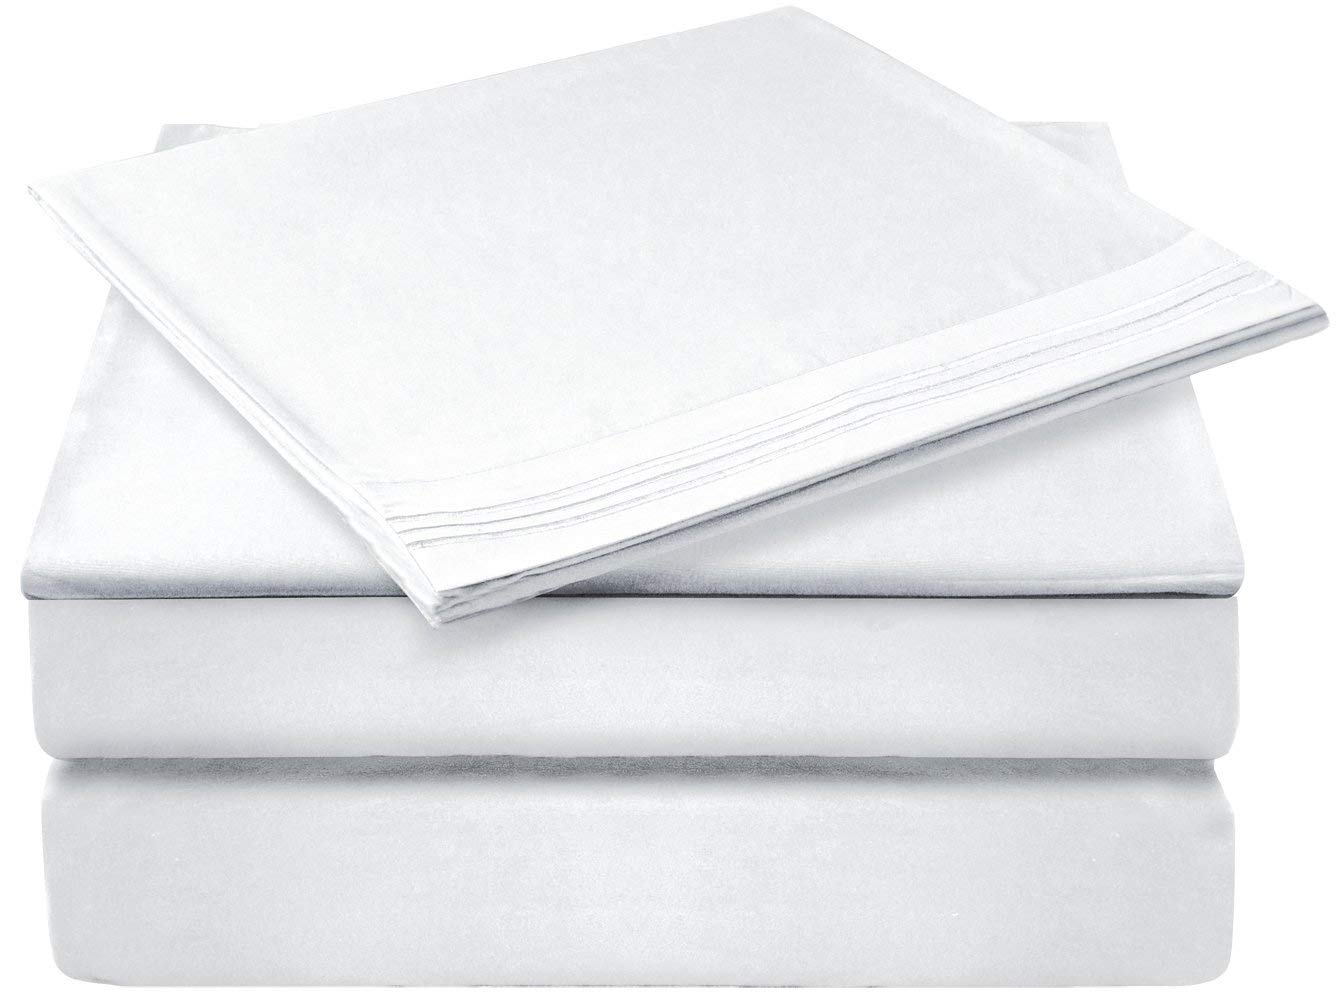 Gleeu0026Cluster 4 Piece White Queen Size Hypoallergenic Bed Sheets $10 (Free  Prime Shipping)